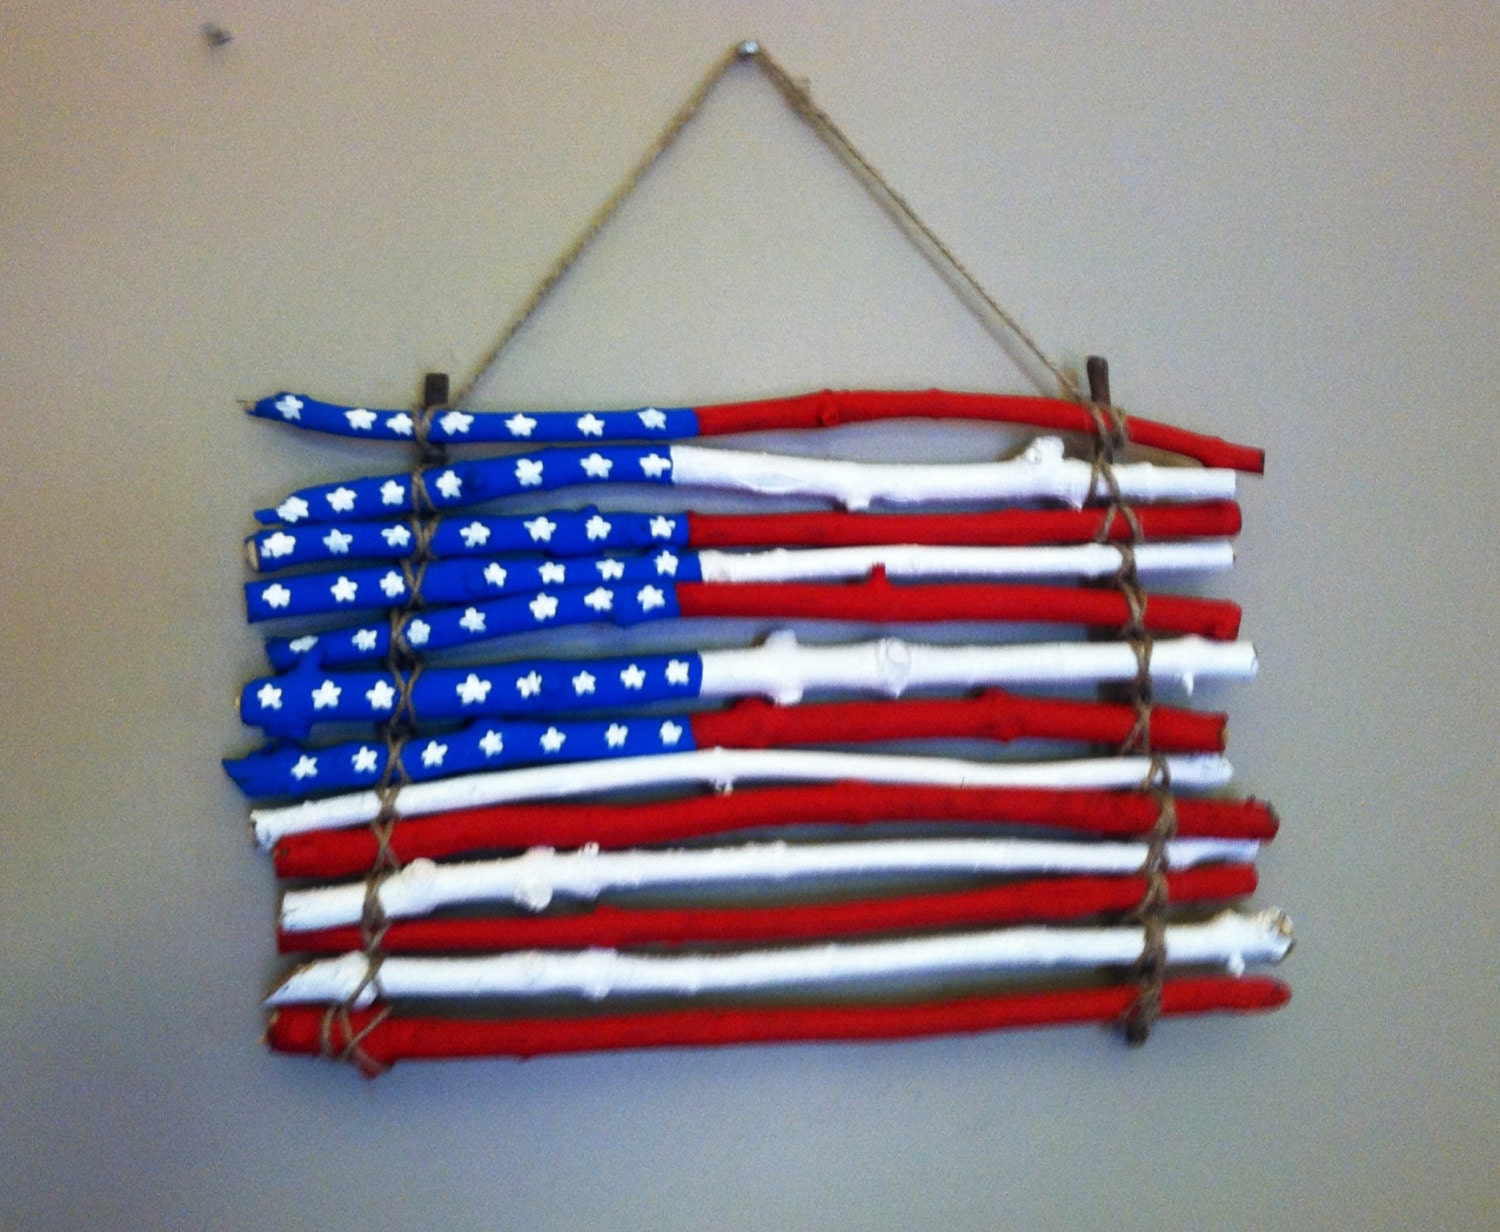 american flag wall hanging by erinsoddsandends on etsy. Black Bedroom Furniture Sets. Home Design Ideas